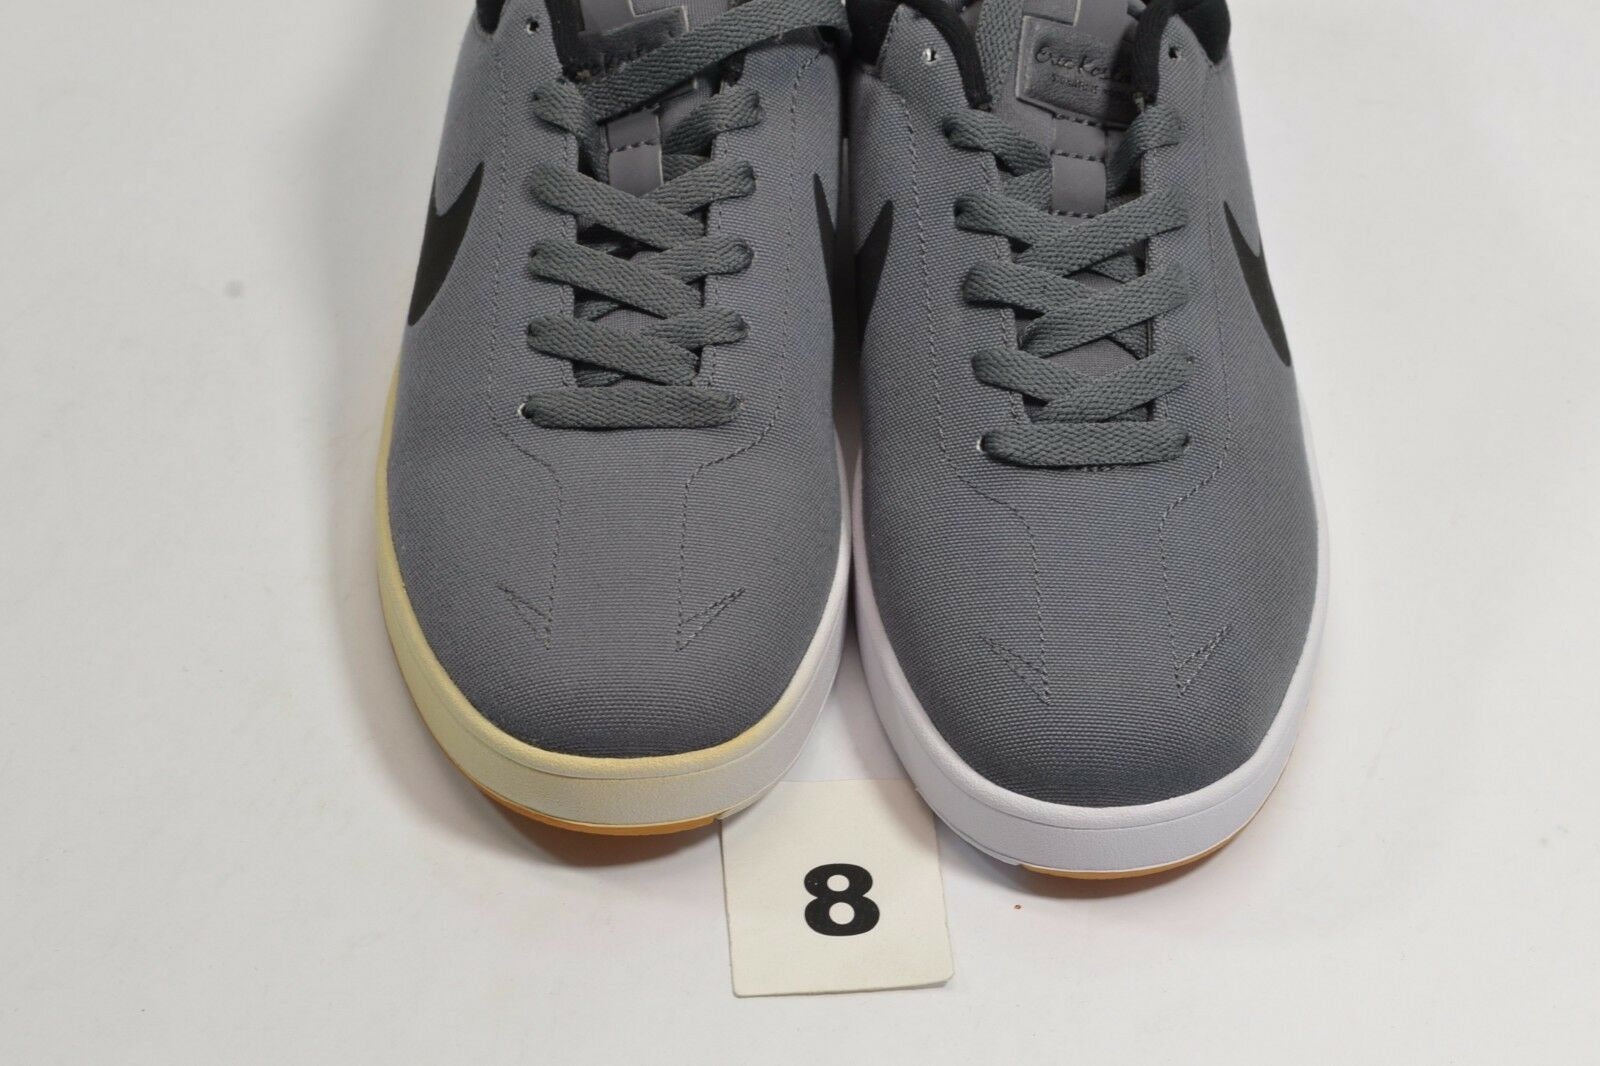 Nike ERIC KOSTON SE Dark Grey Black Wolf Grey White Skate (D) (519) Men's Shoes